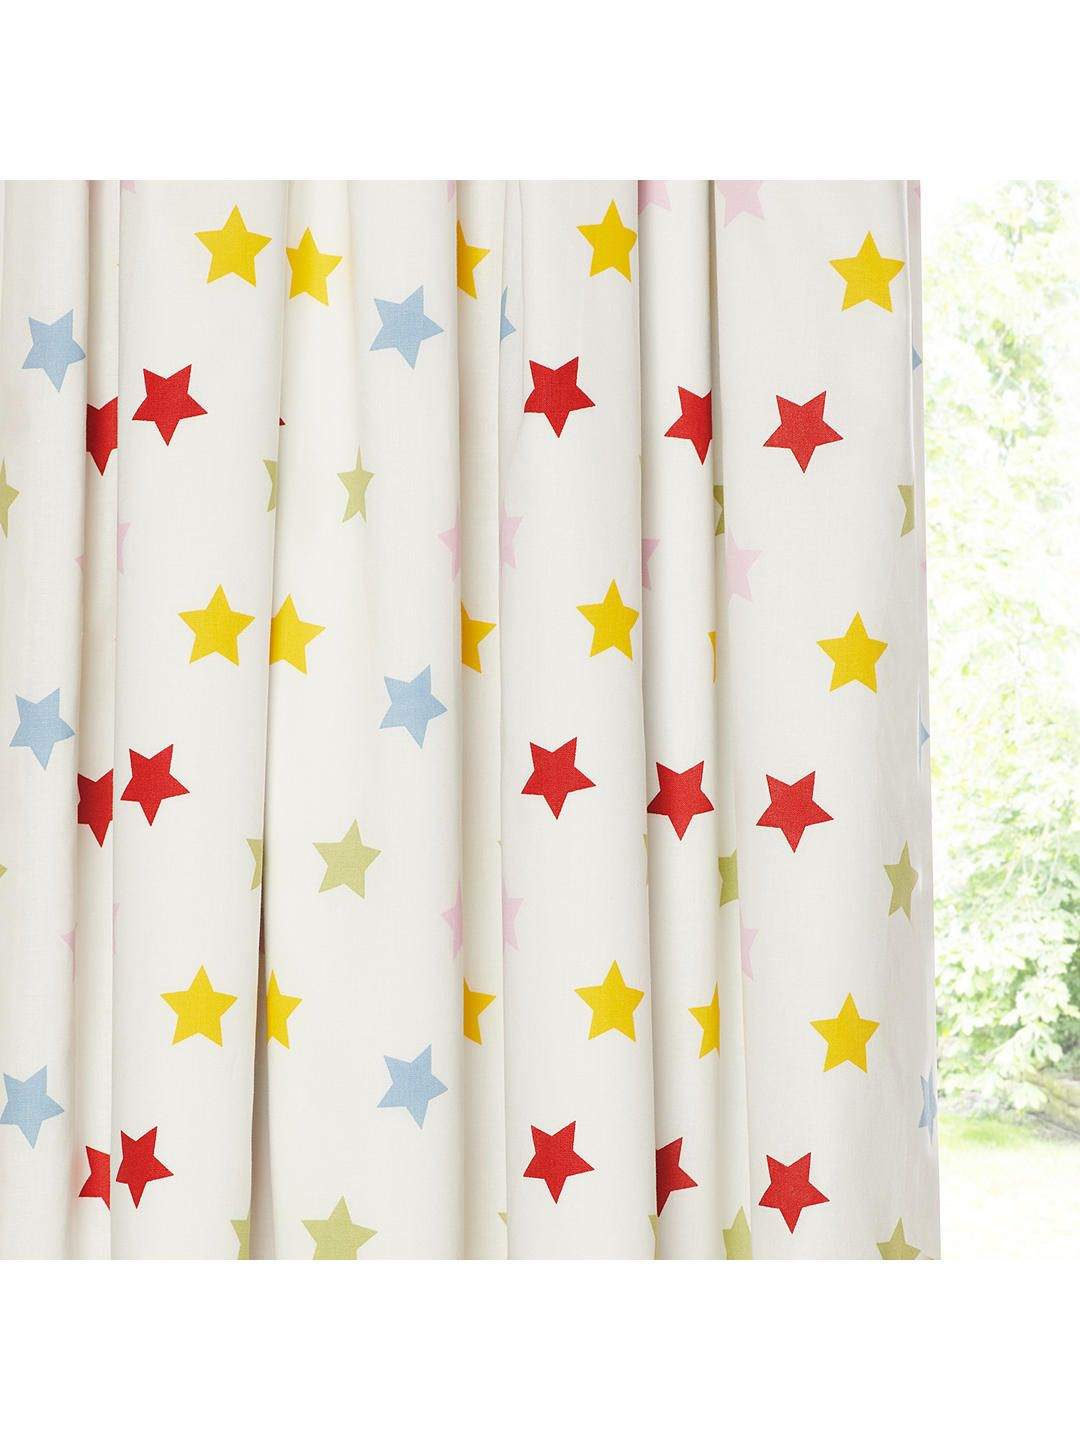 Little home at john lewis stars pencil pleat blackout lined